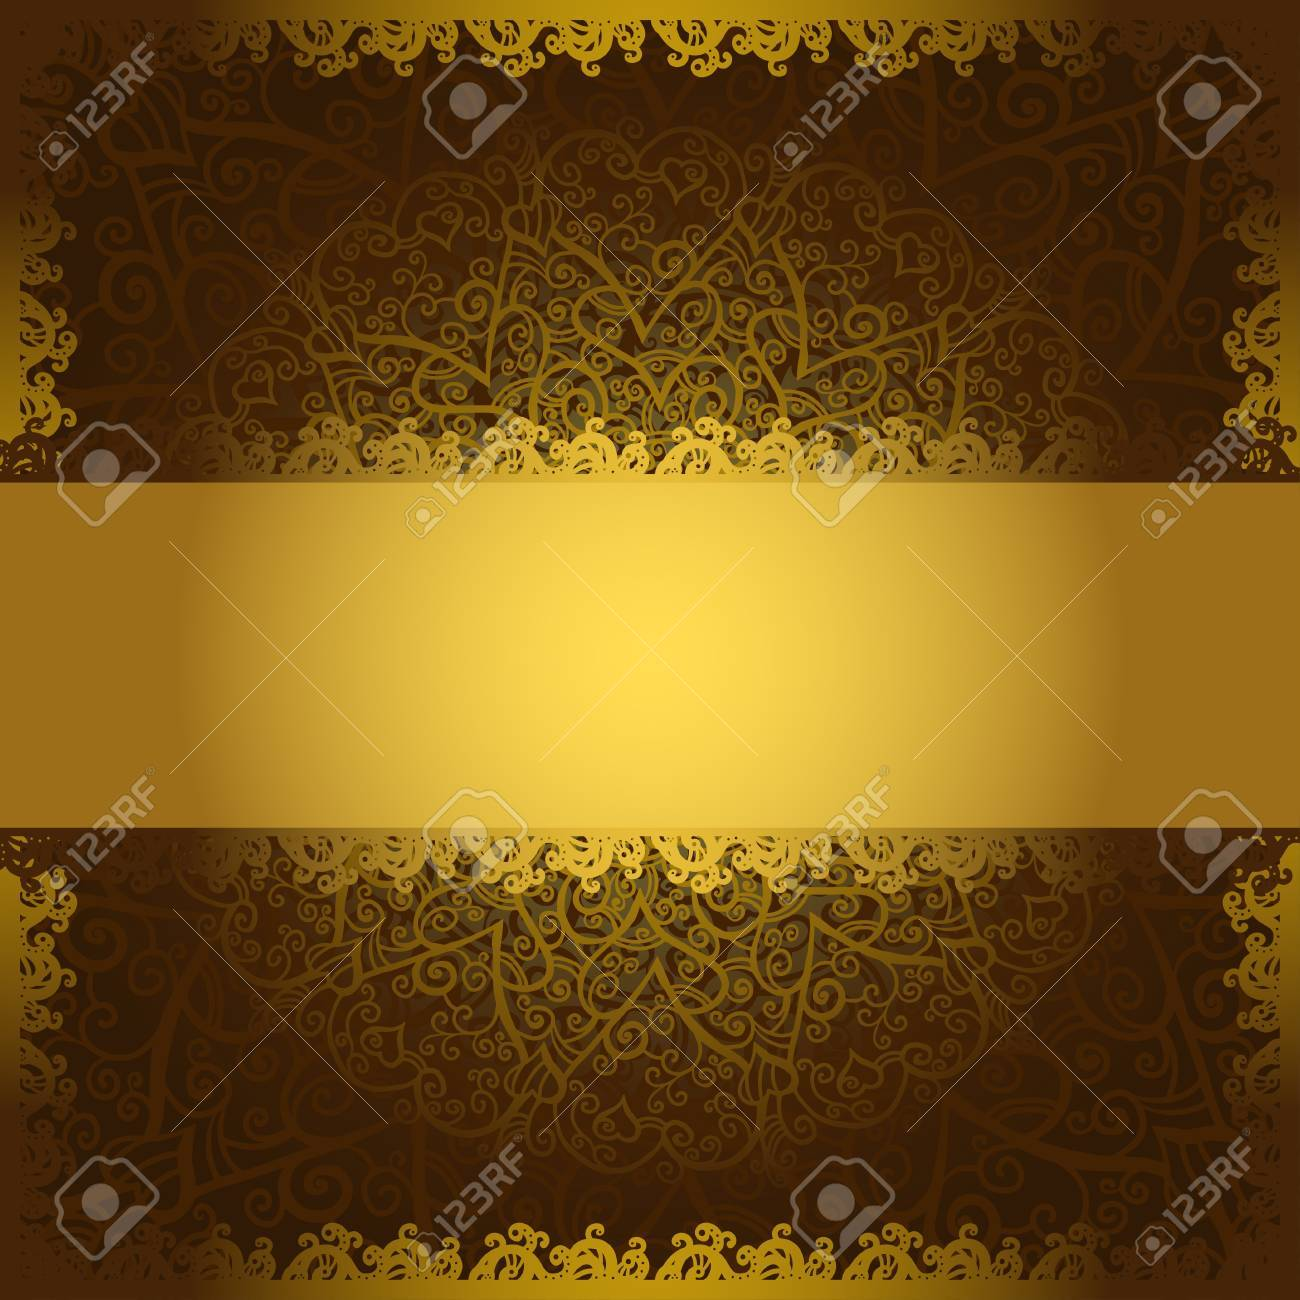 Vintage brown flowers ornament background with text field-vector Stock Vector - 18120082